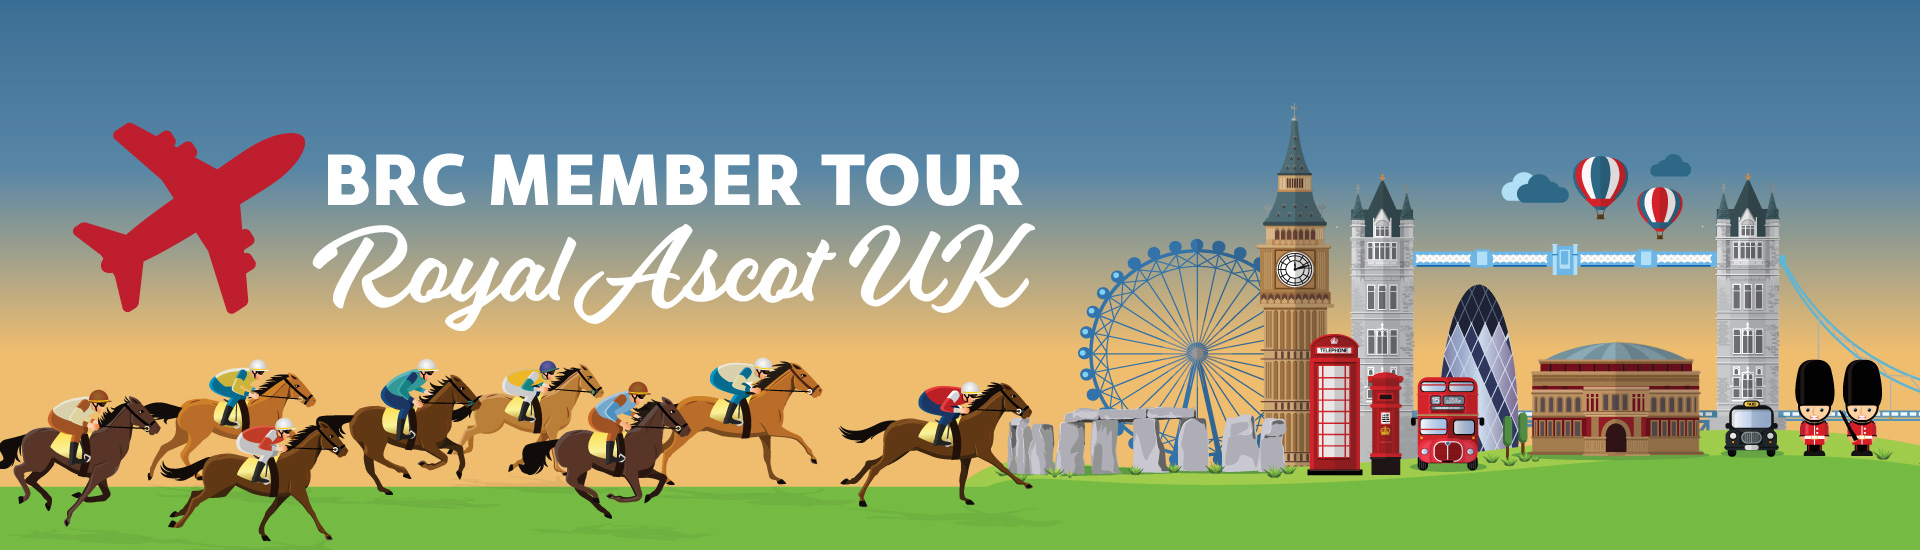 BRC Member Royal Ascot Tour | Brisbane Racing Club